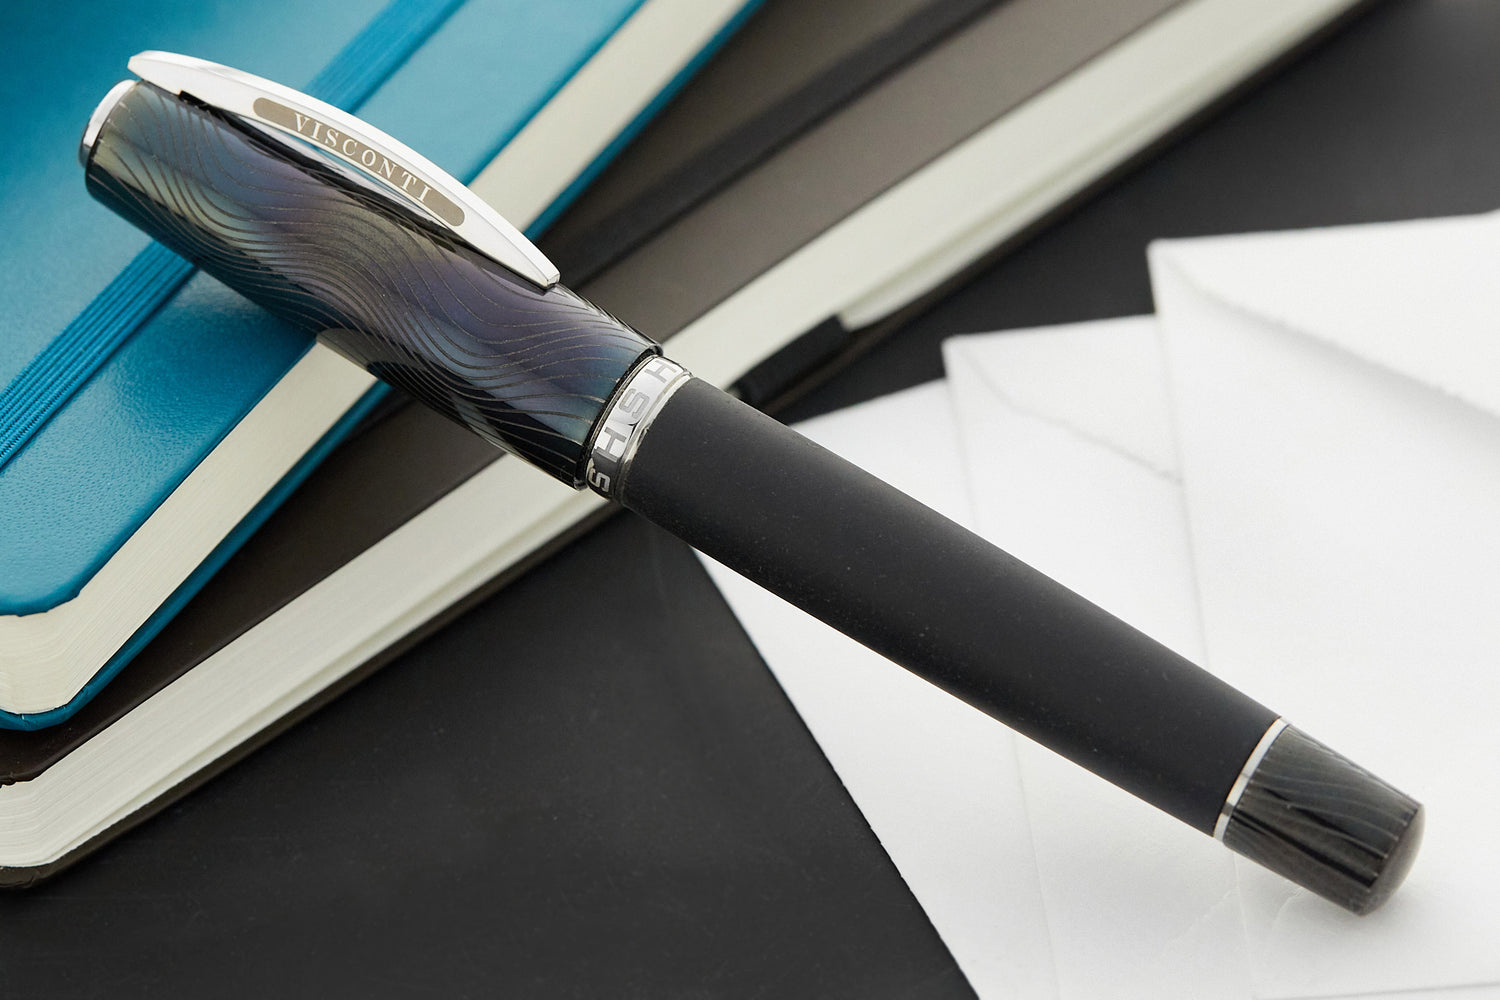 Visconti Homo Sapiens Fountain Pen - Evolution